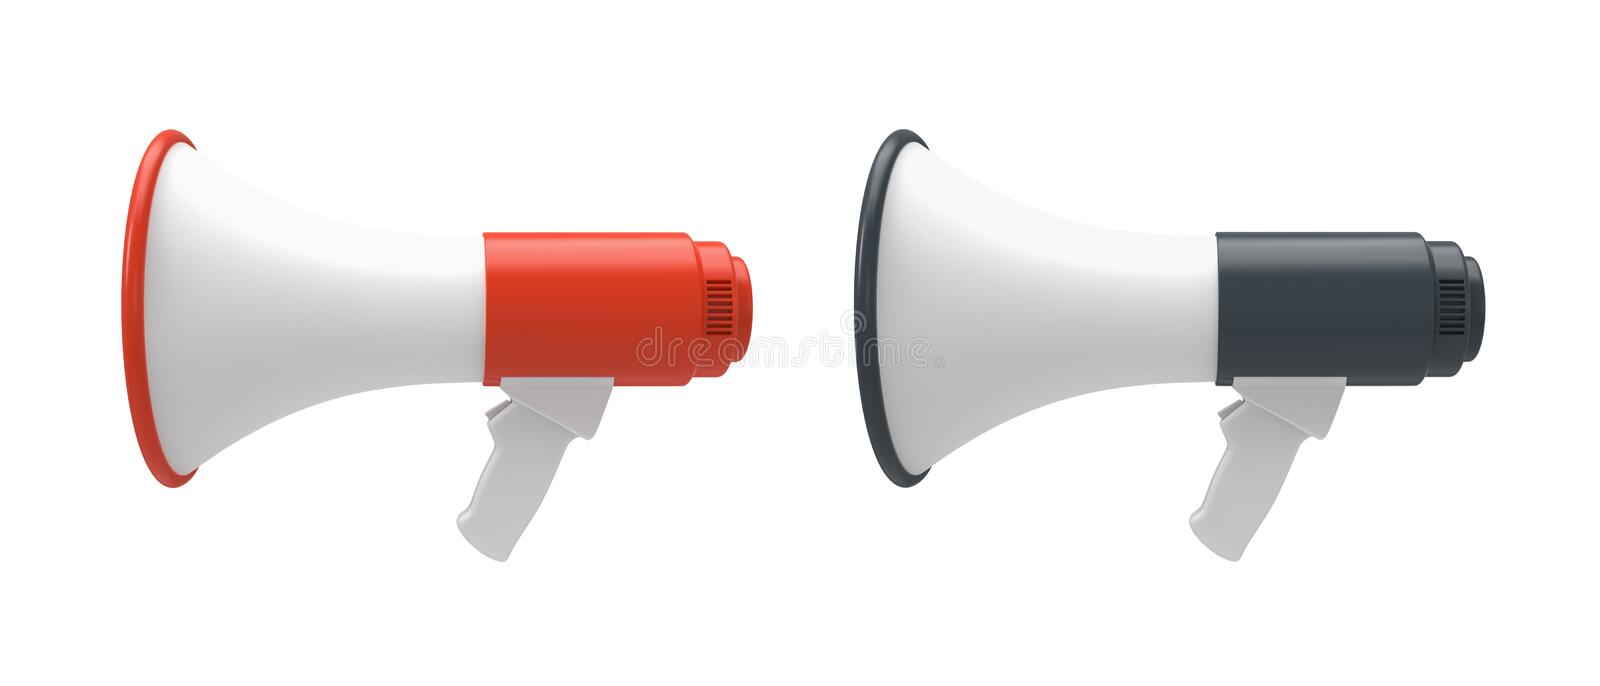 Megaphone isolated on a white. vector illustration